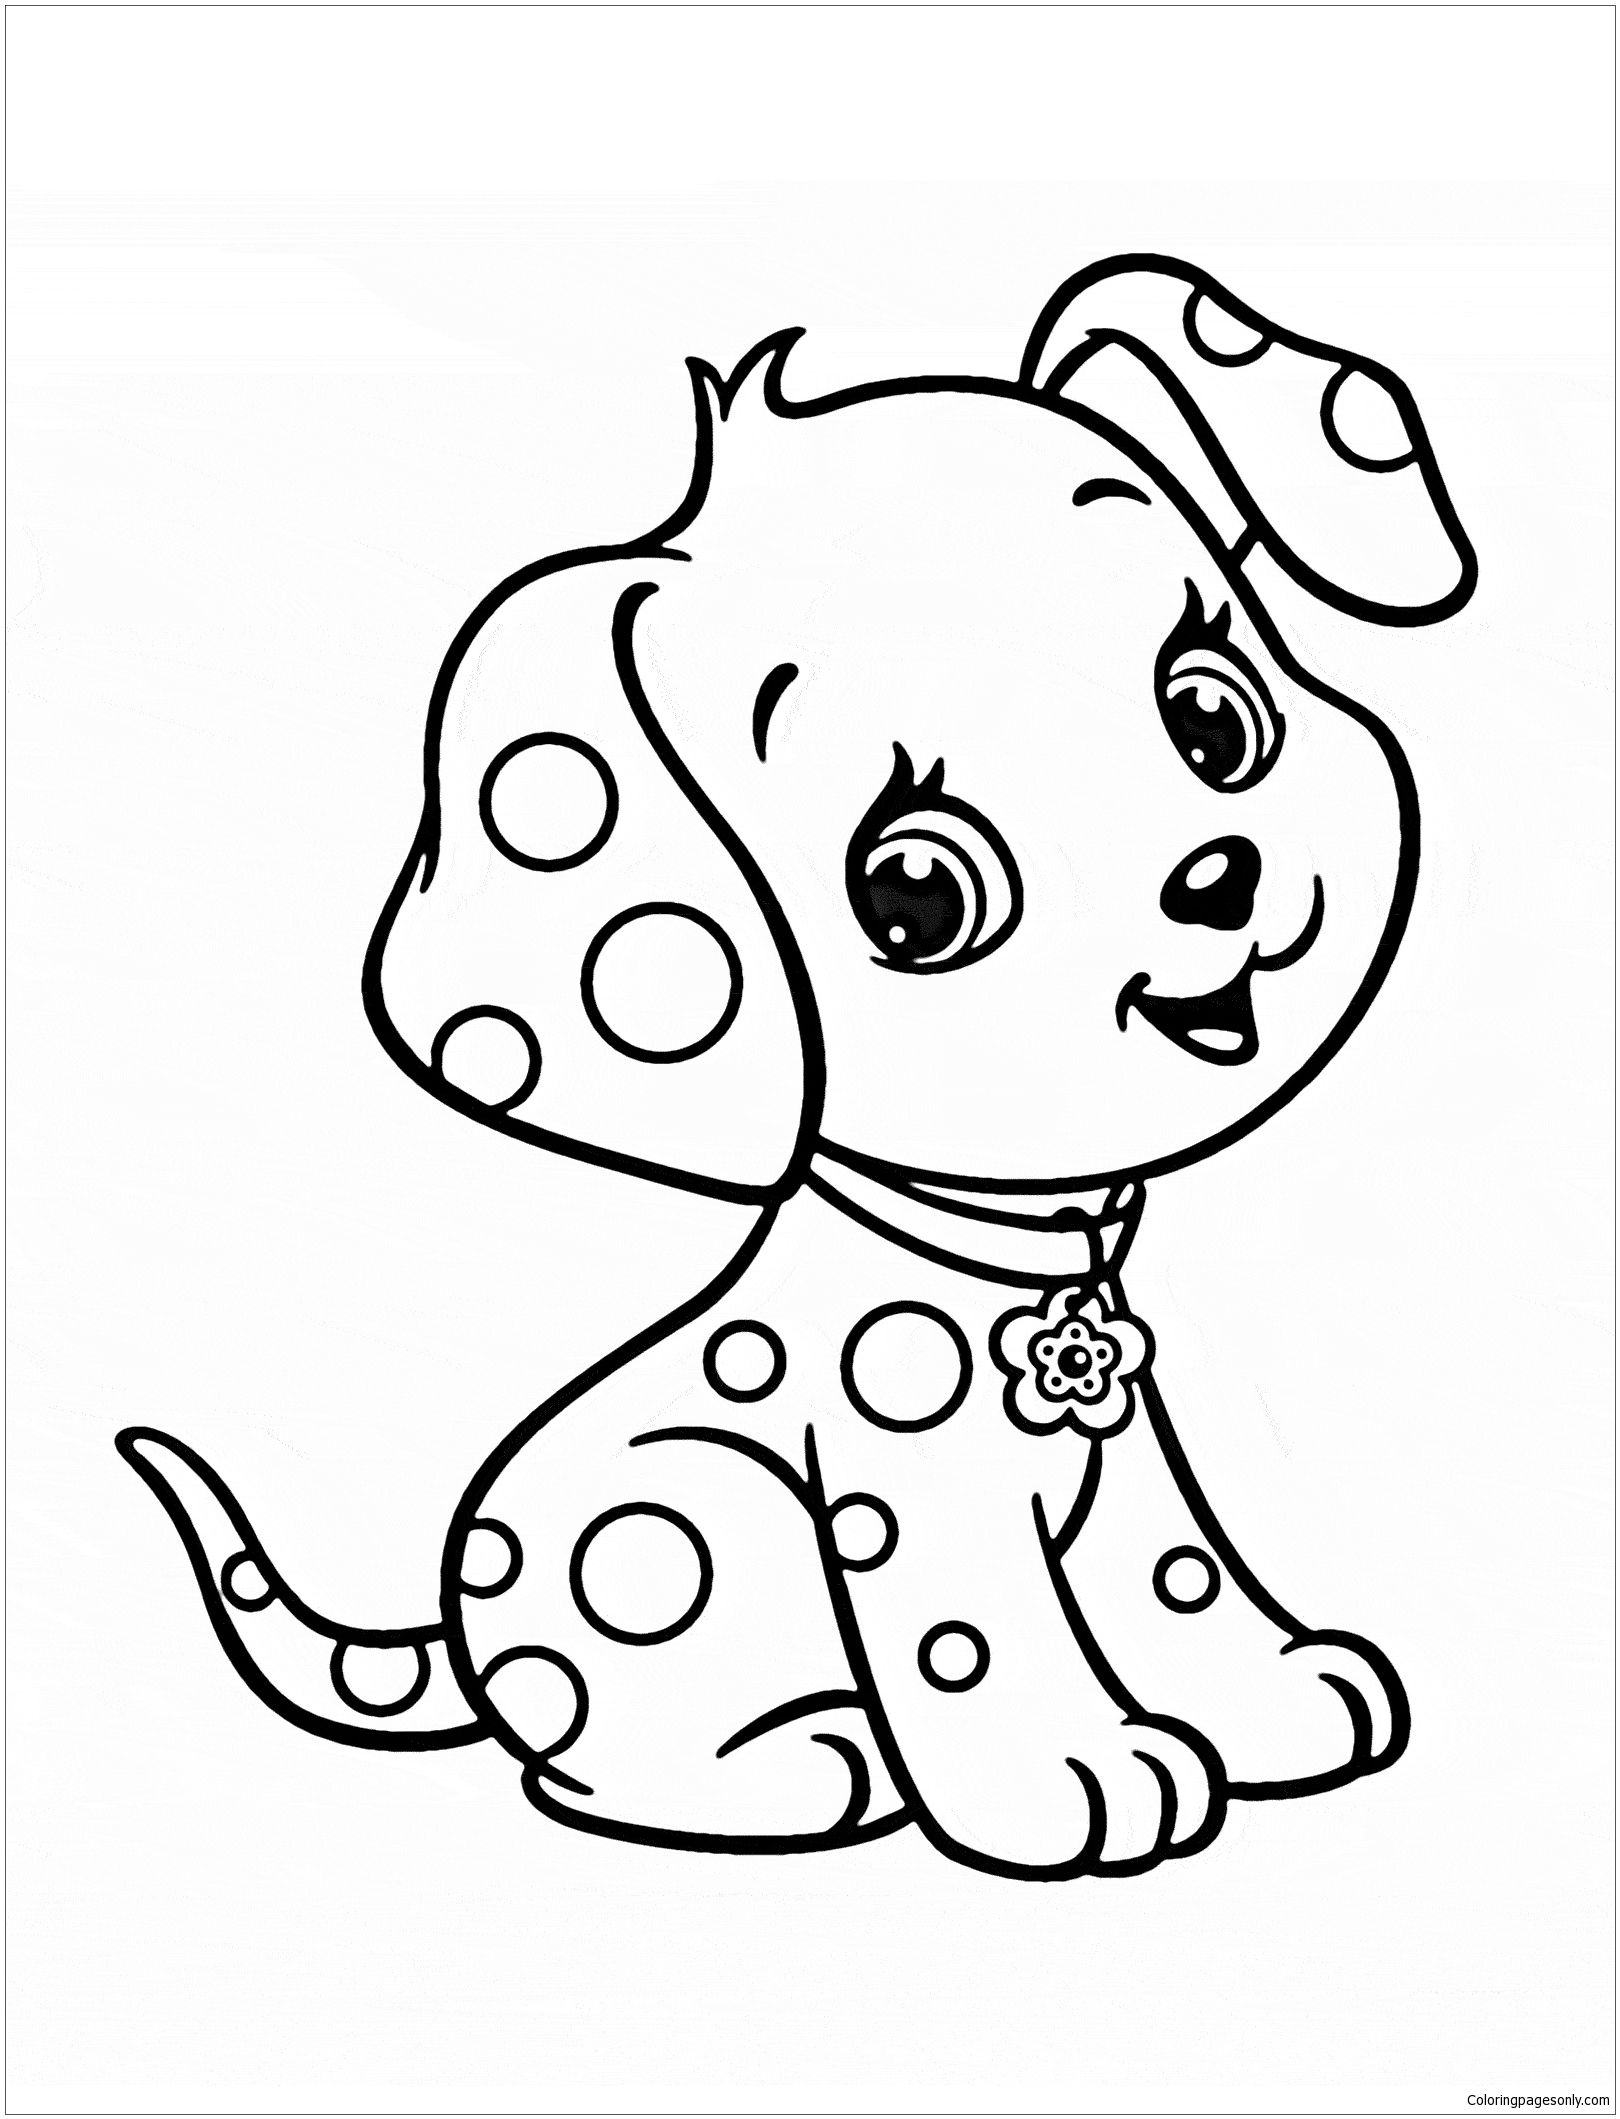 cute puppy coloring pages to print Cute Puppy 5 Coloring Page | Puppy Coloring Pages | Puppy coloring  cute puppy coloring pages to print